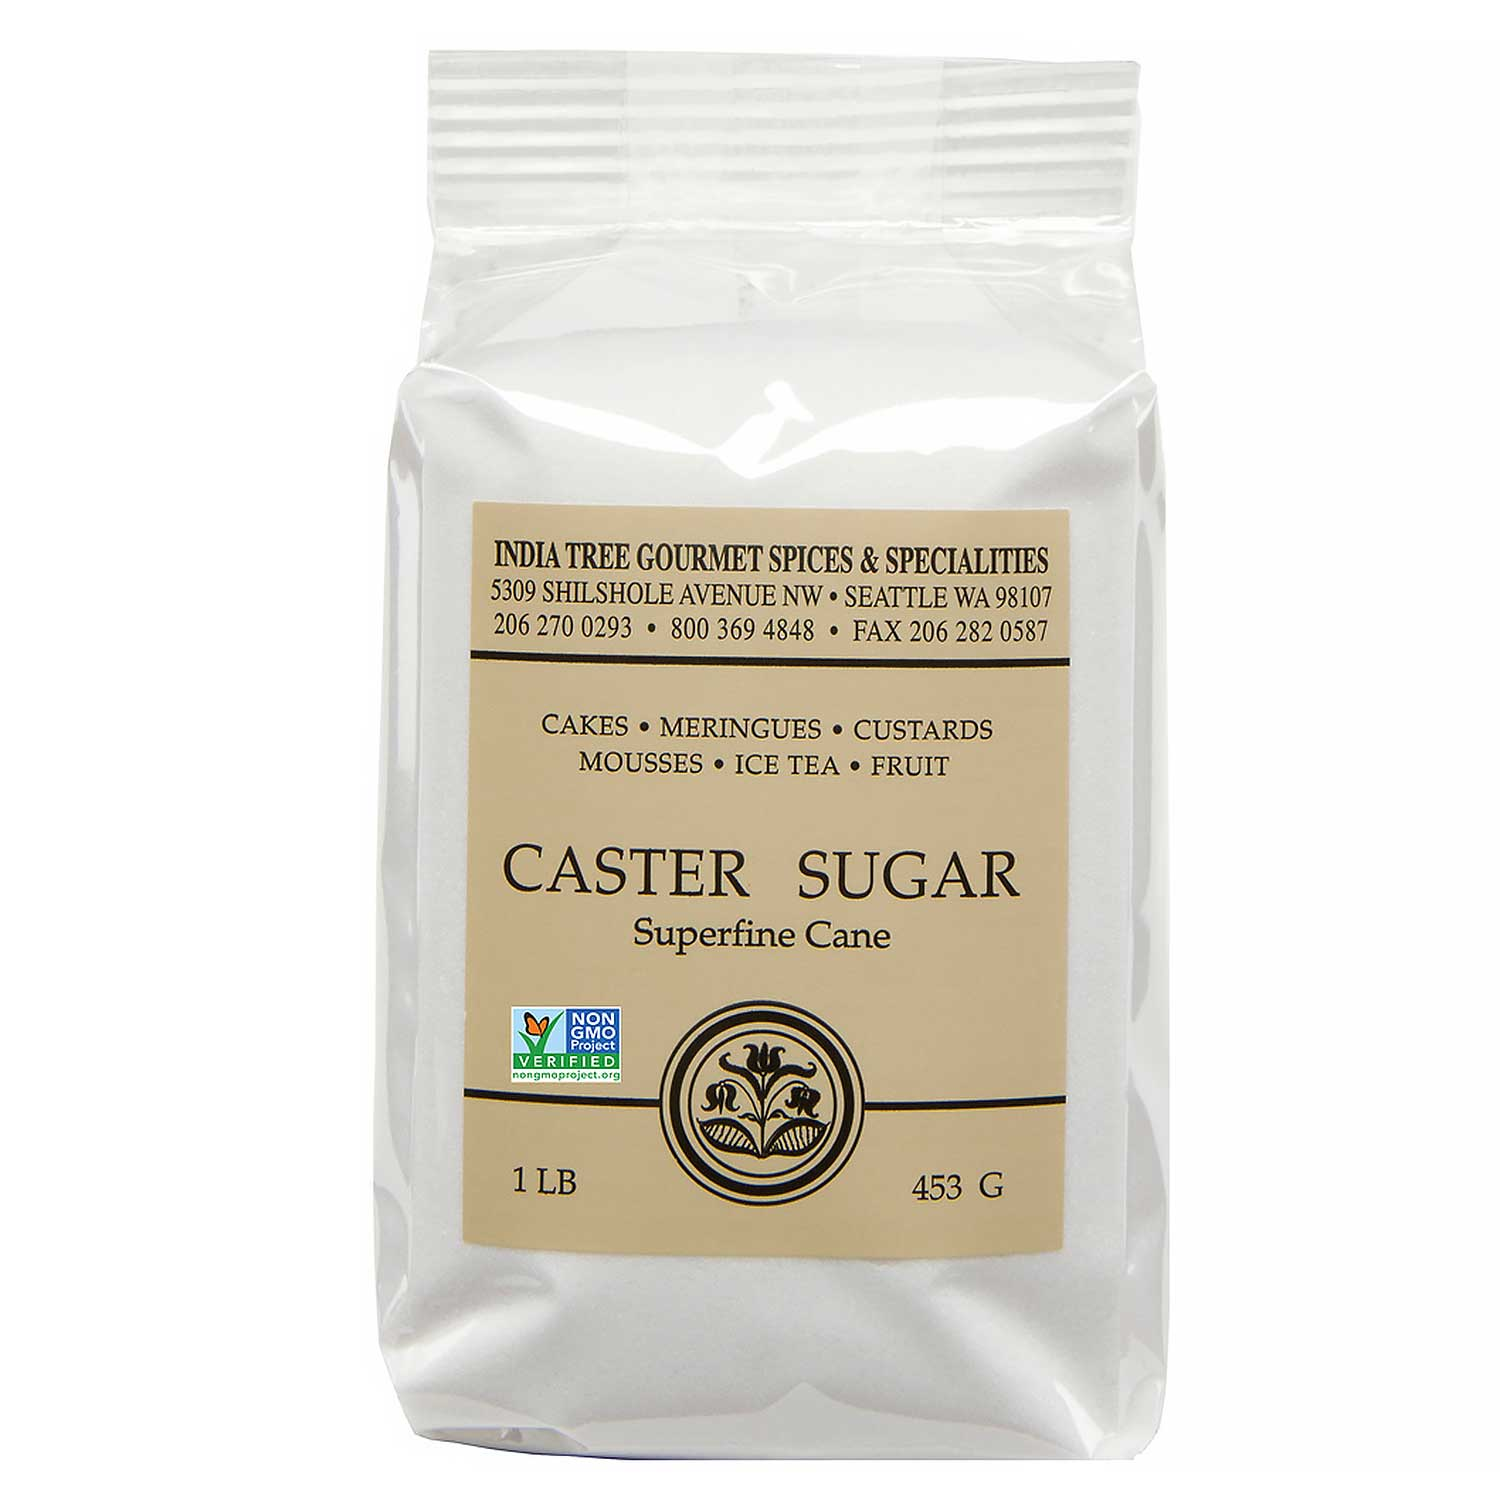 Sugar-Caster Superfine Cane